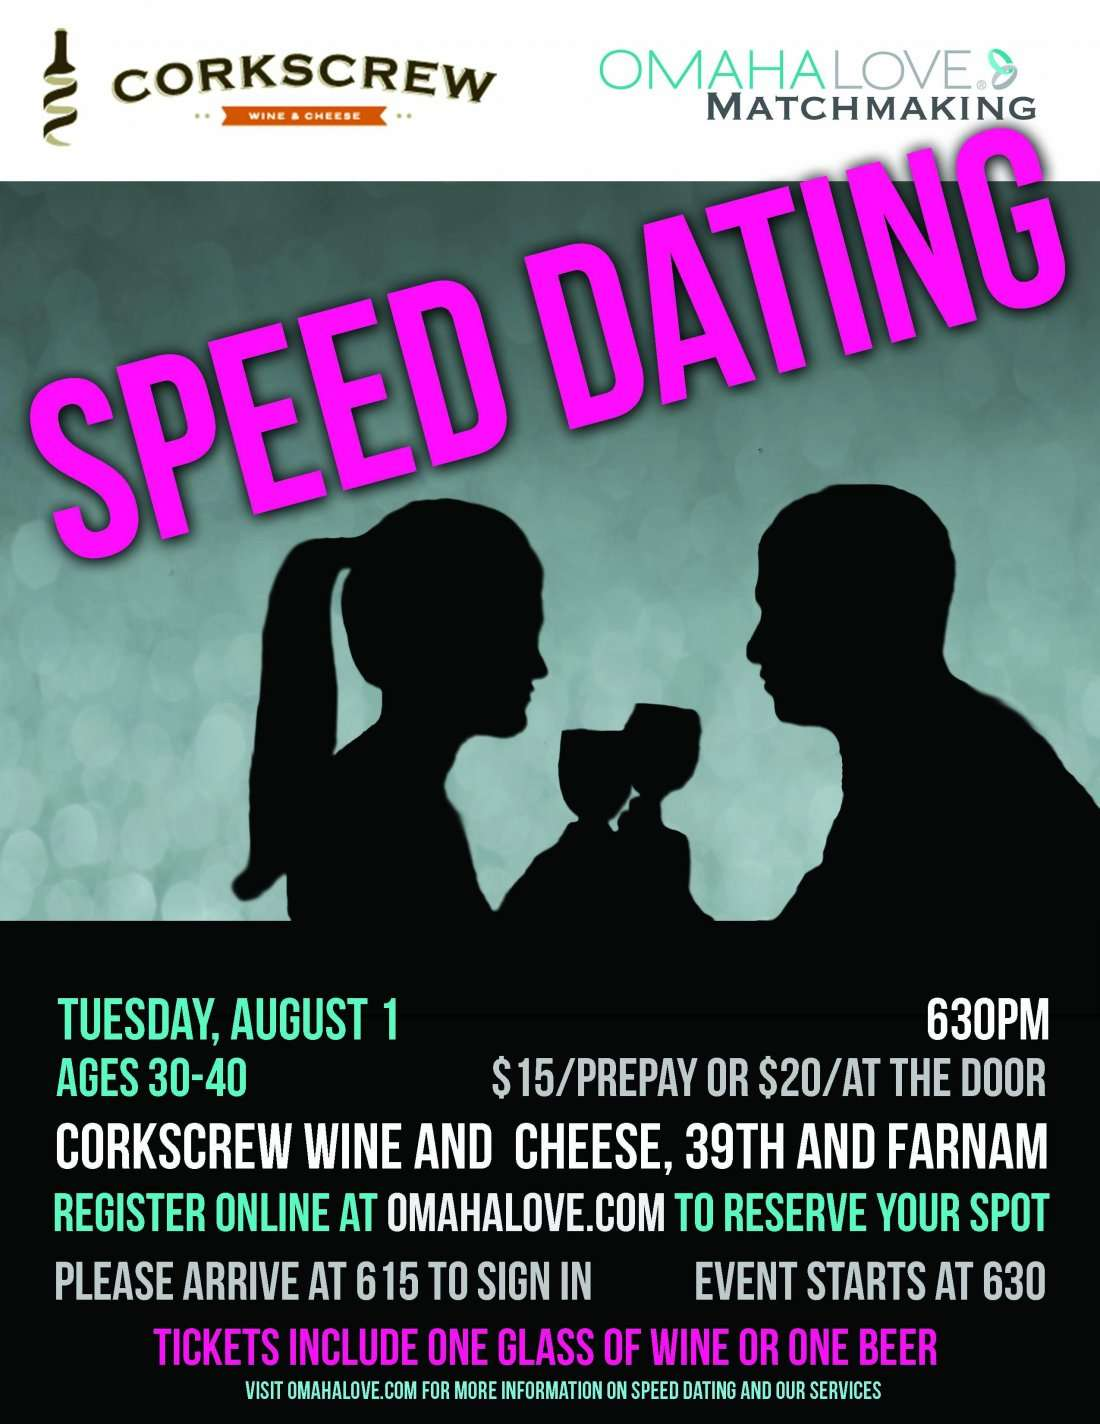 from Judson how to start speed dating event